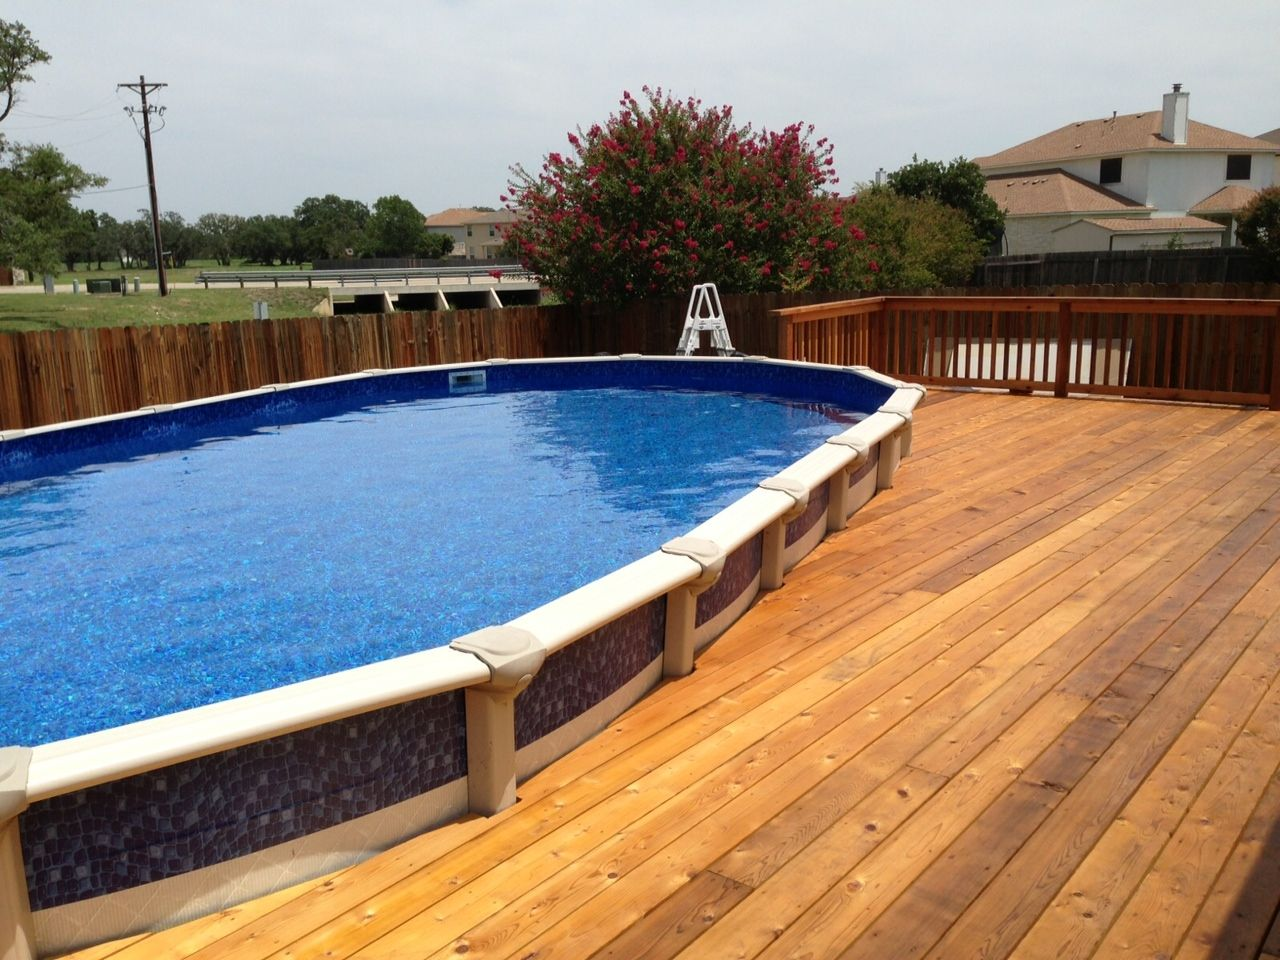 Pool Deck Combo Above Ground Pool In Ground Pools Best Above Ground Pool